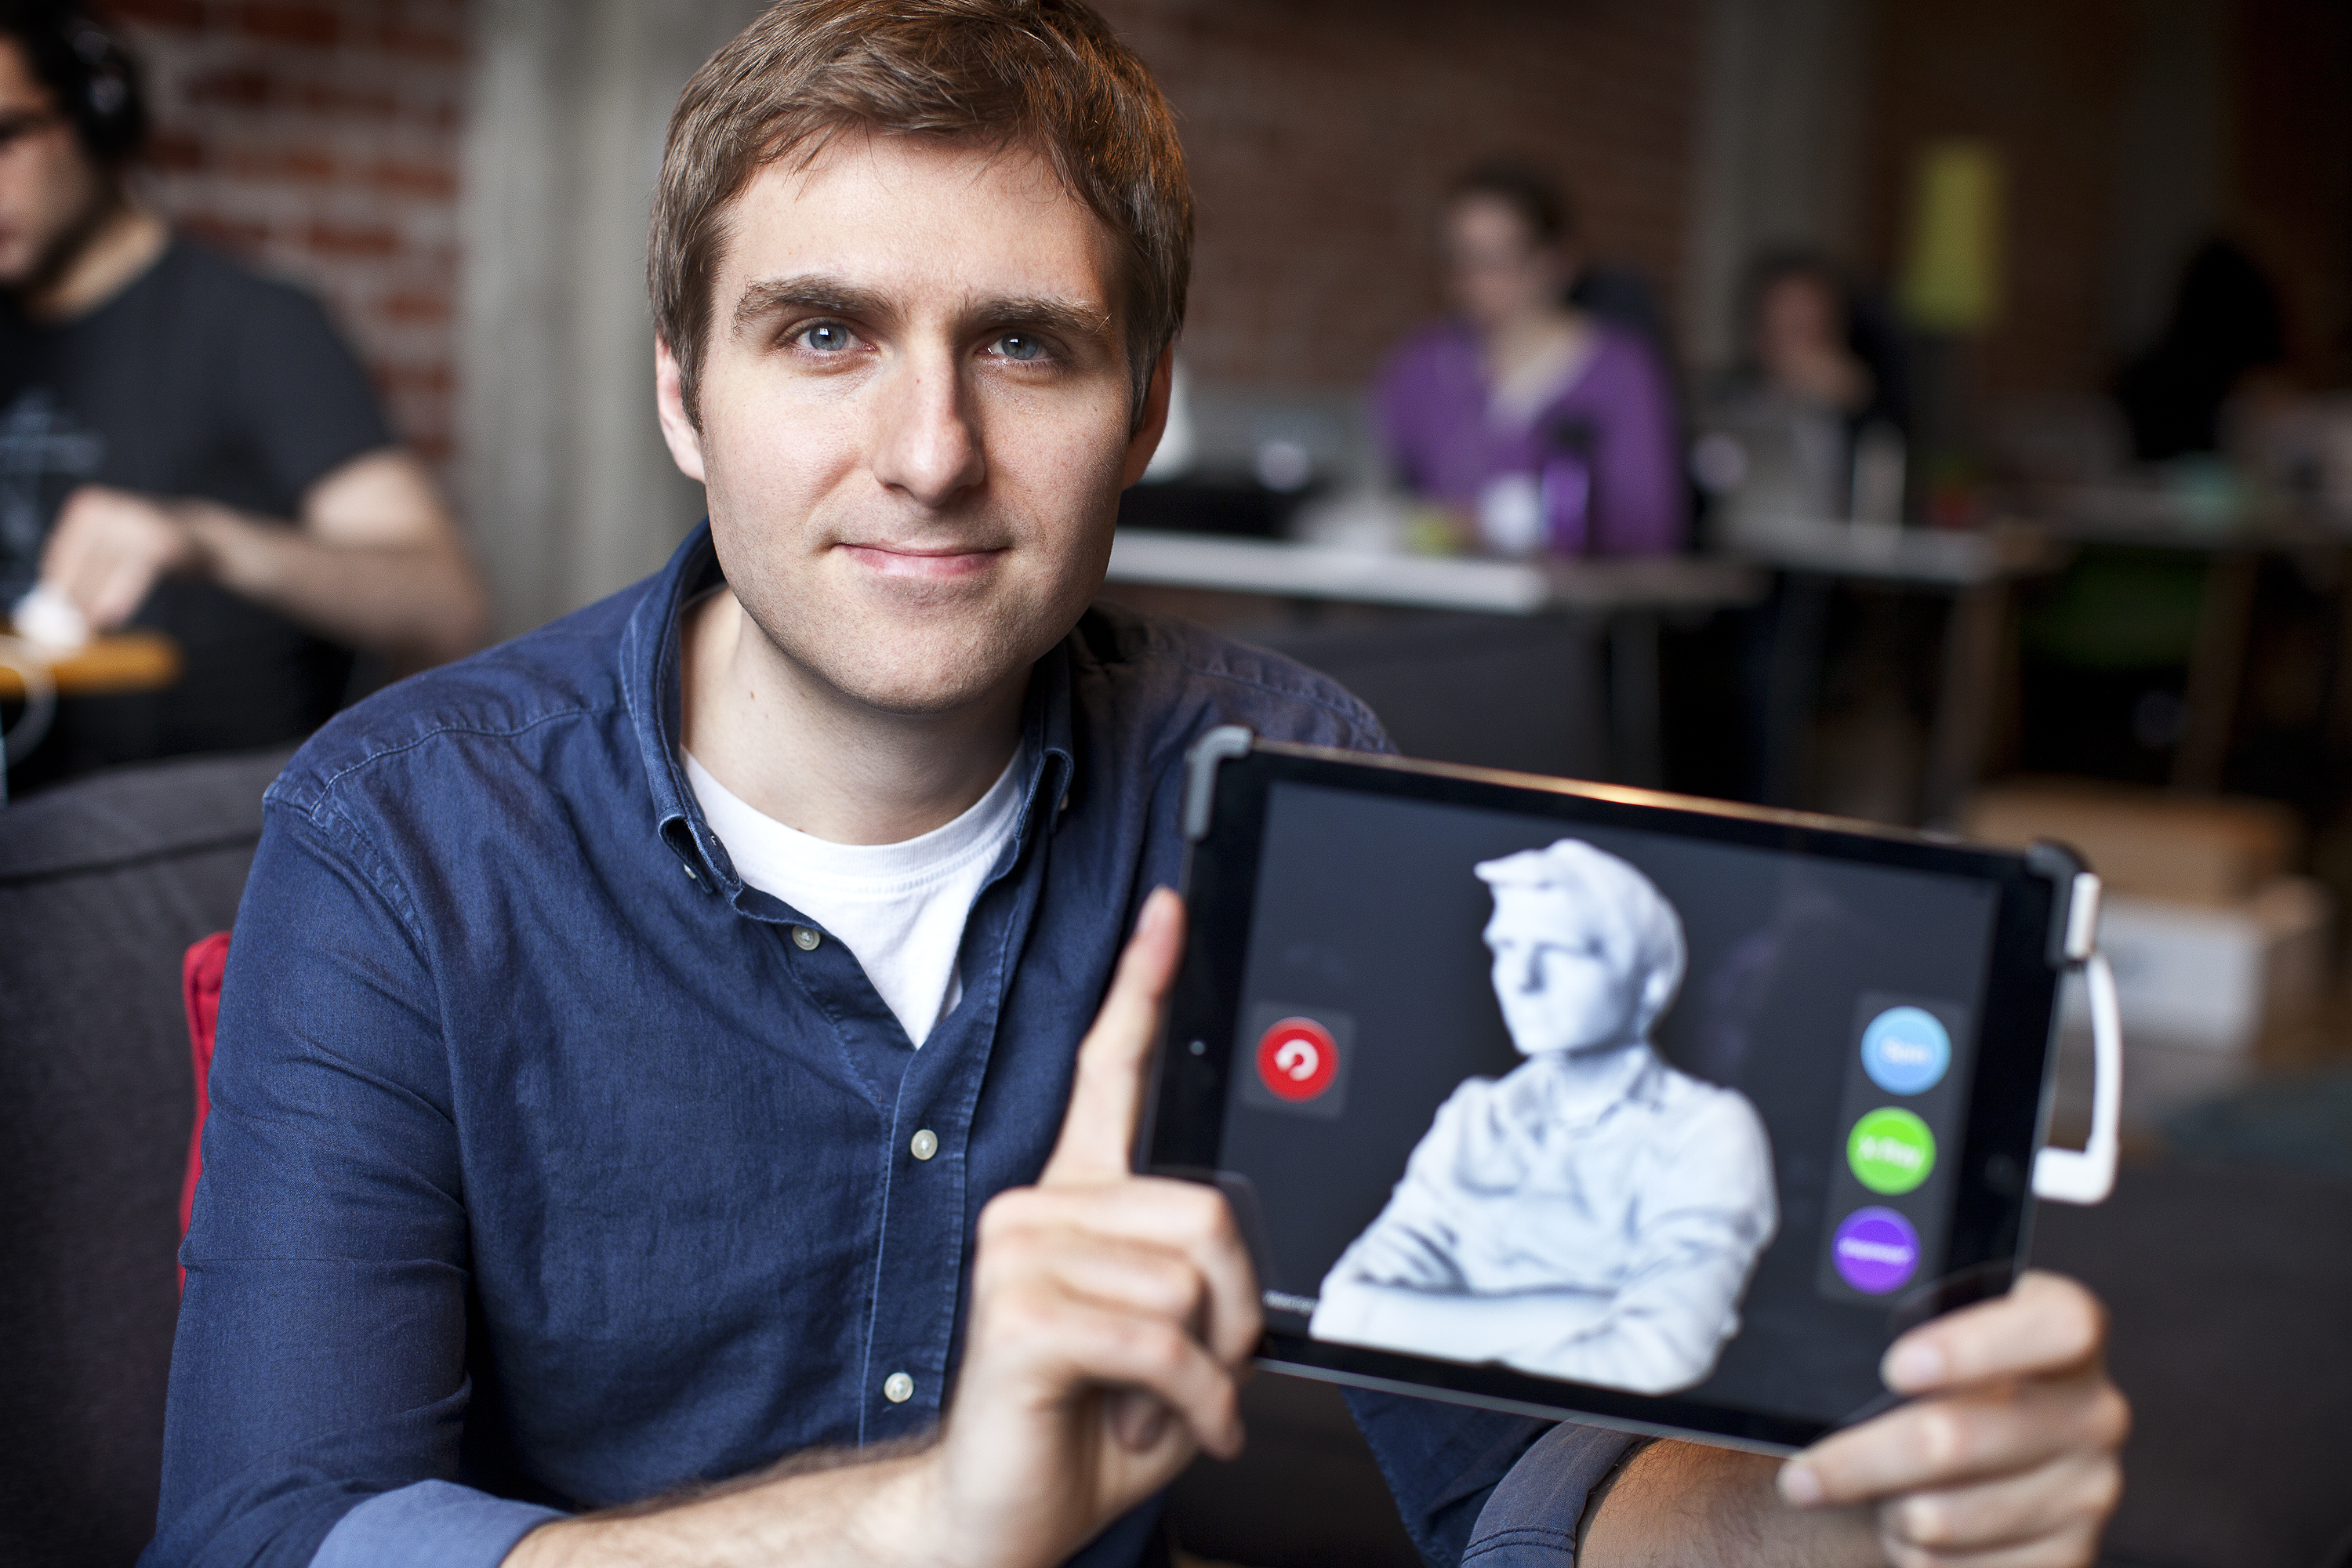 Jeff Powers, CEO of Occipital, sits holding an iPad with a 3D image of himself that was scanned earlier.